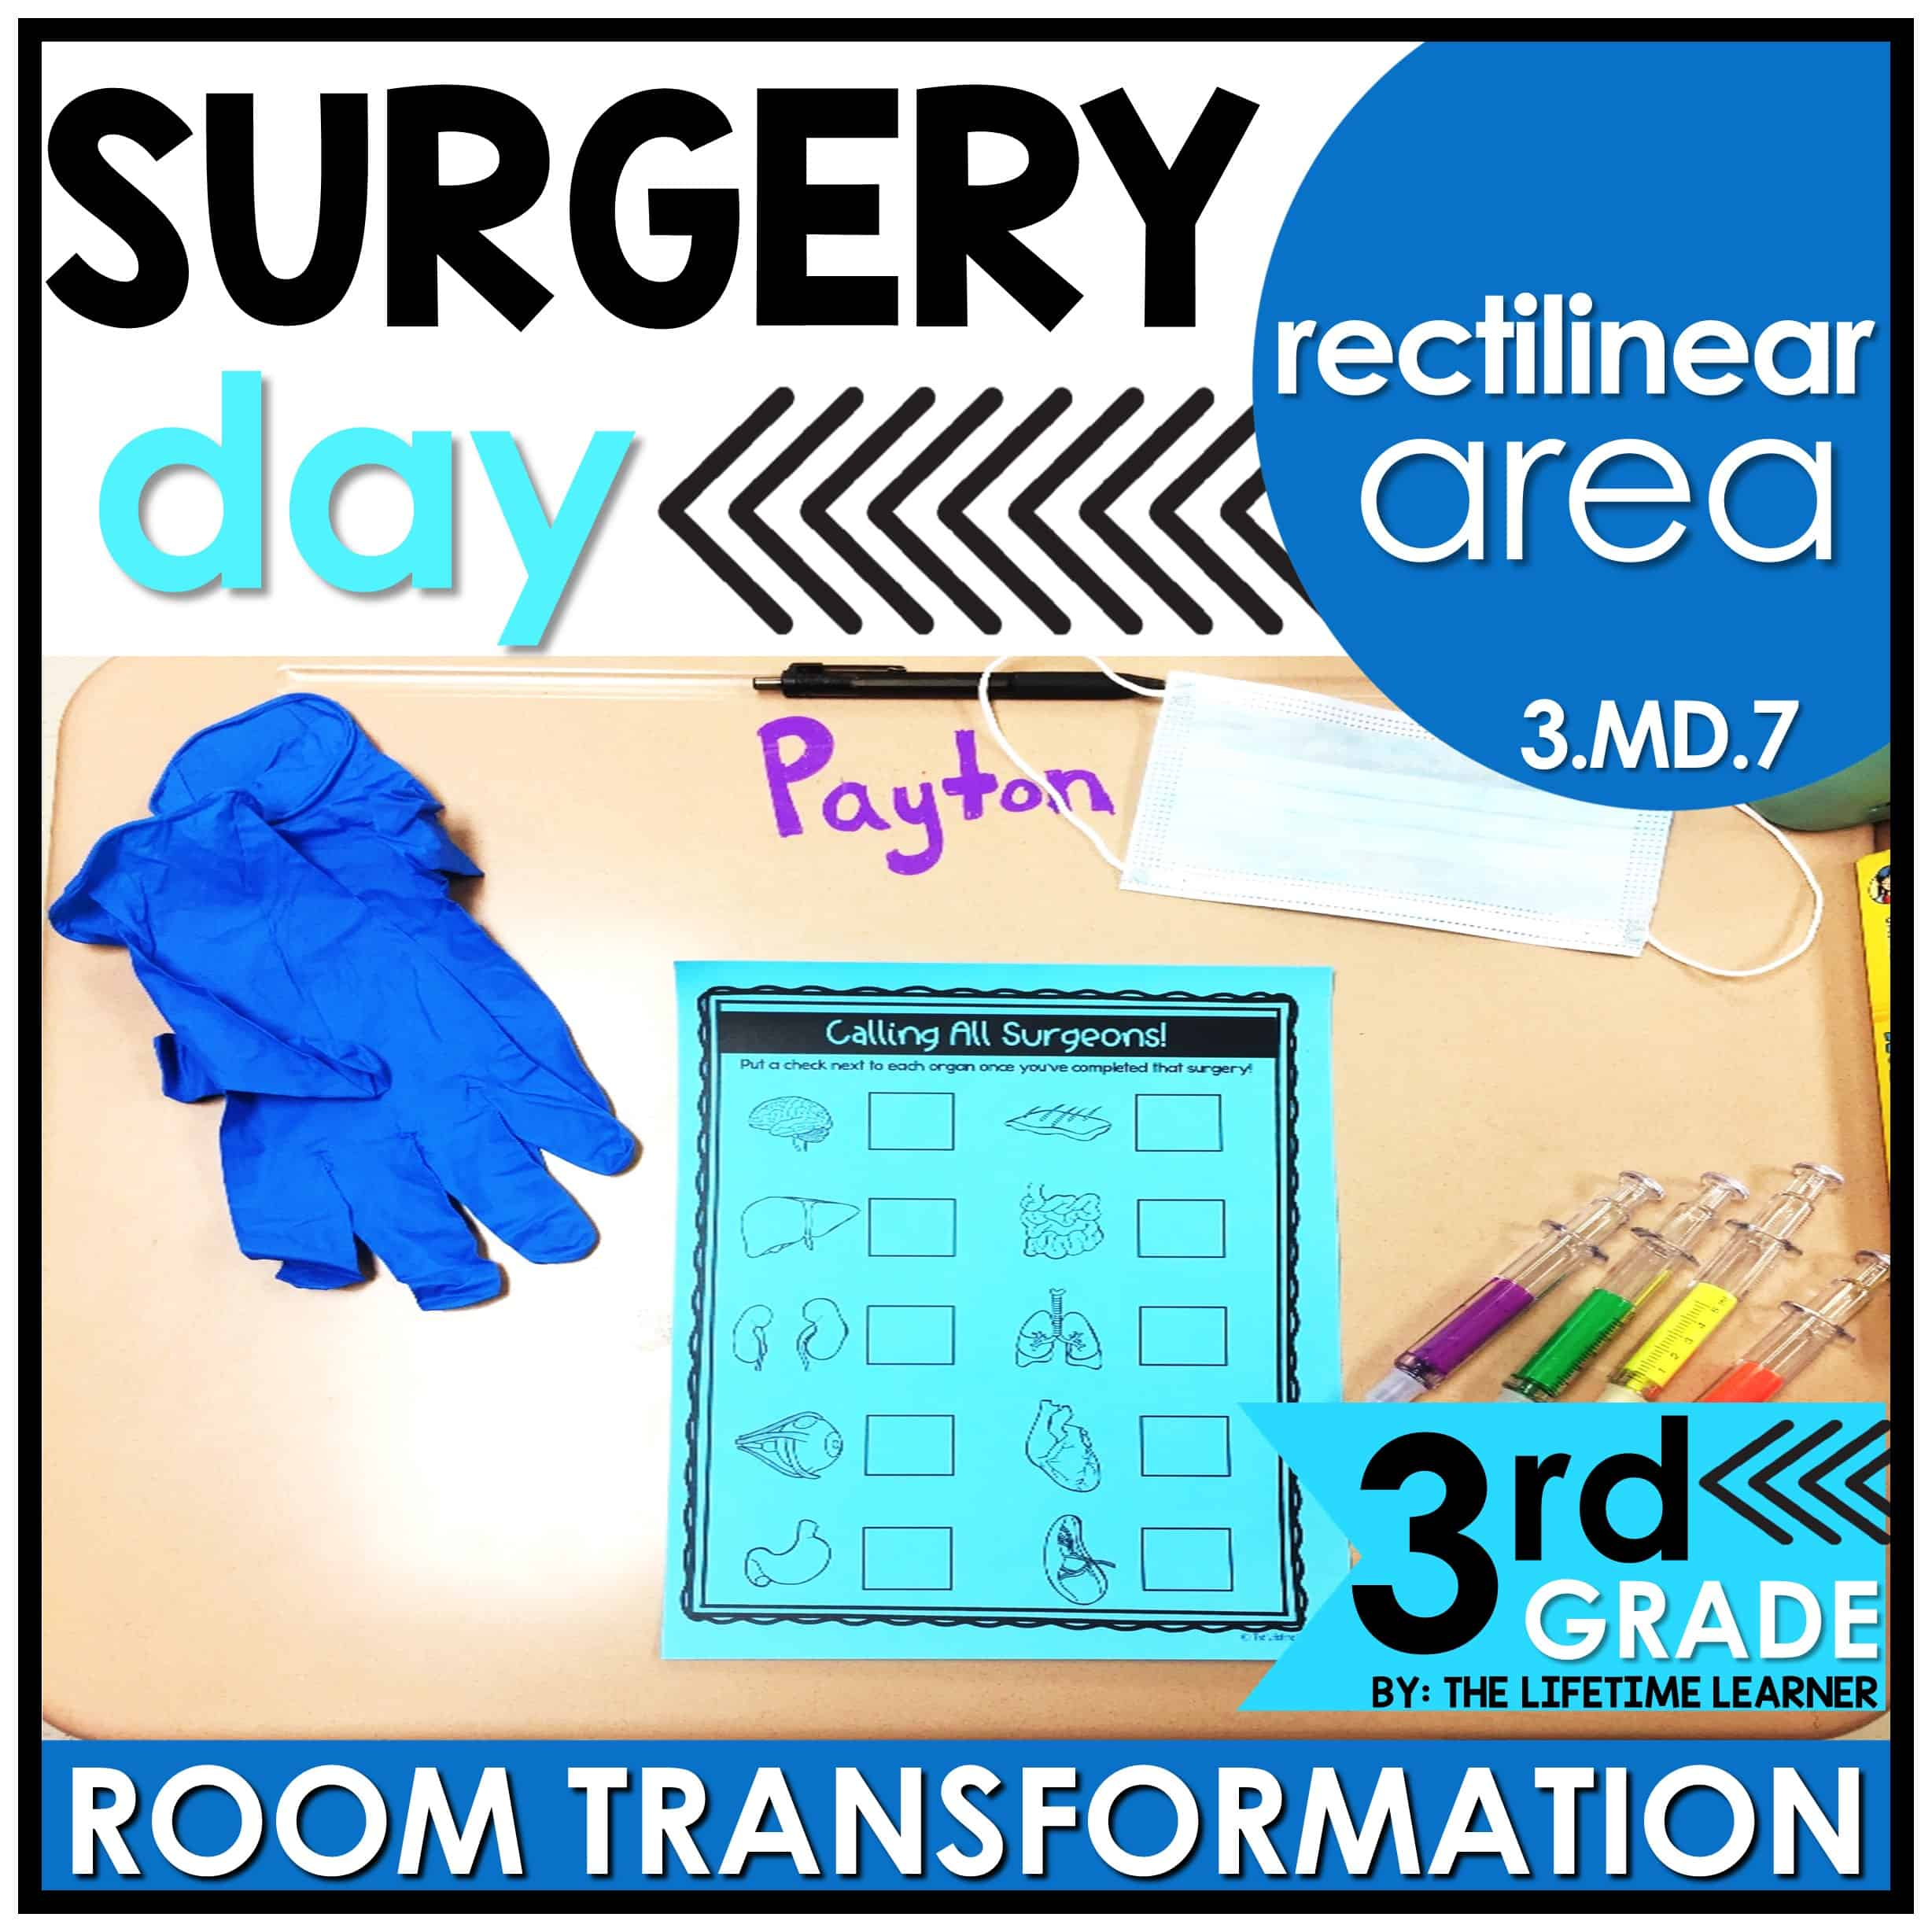 medium resolution of Rectilinear Area   Math Surgery Classroom Transformation - The Lifetime  Learner